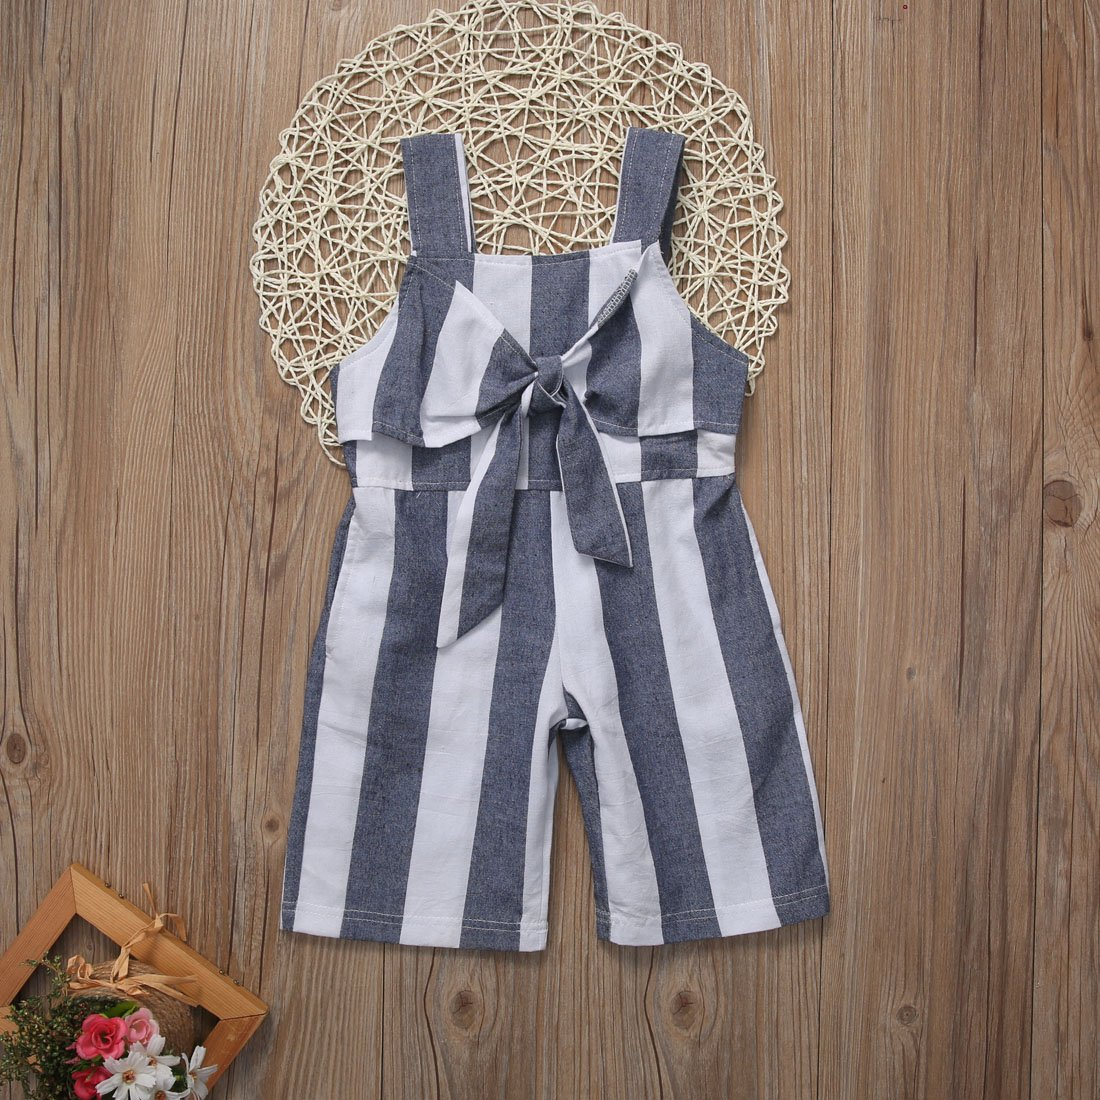 XARAZA Toddler Baby Girl Ruffle Loose Jumpsuit Romper Overalls Long Pants Clothes Outfits